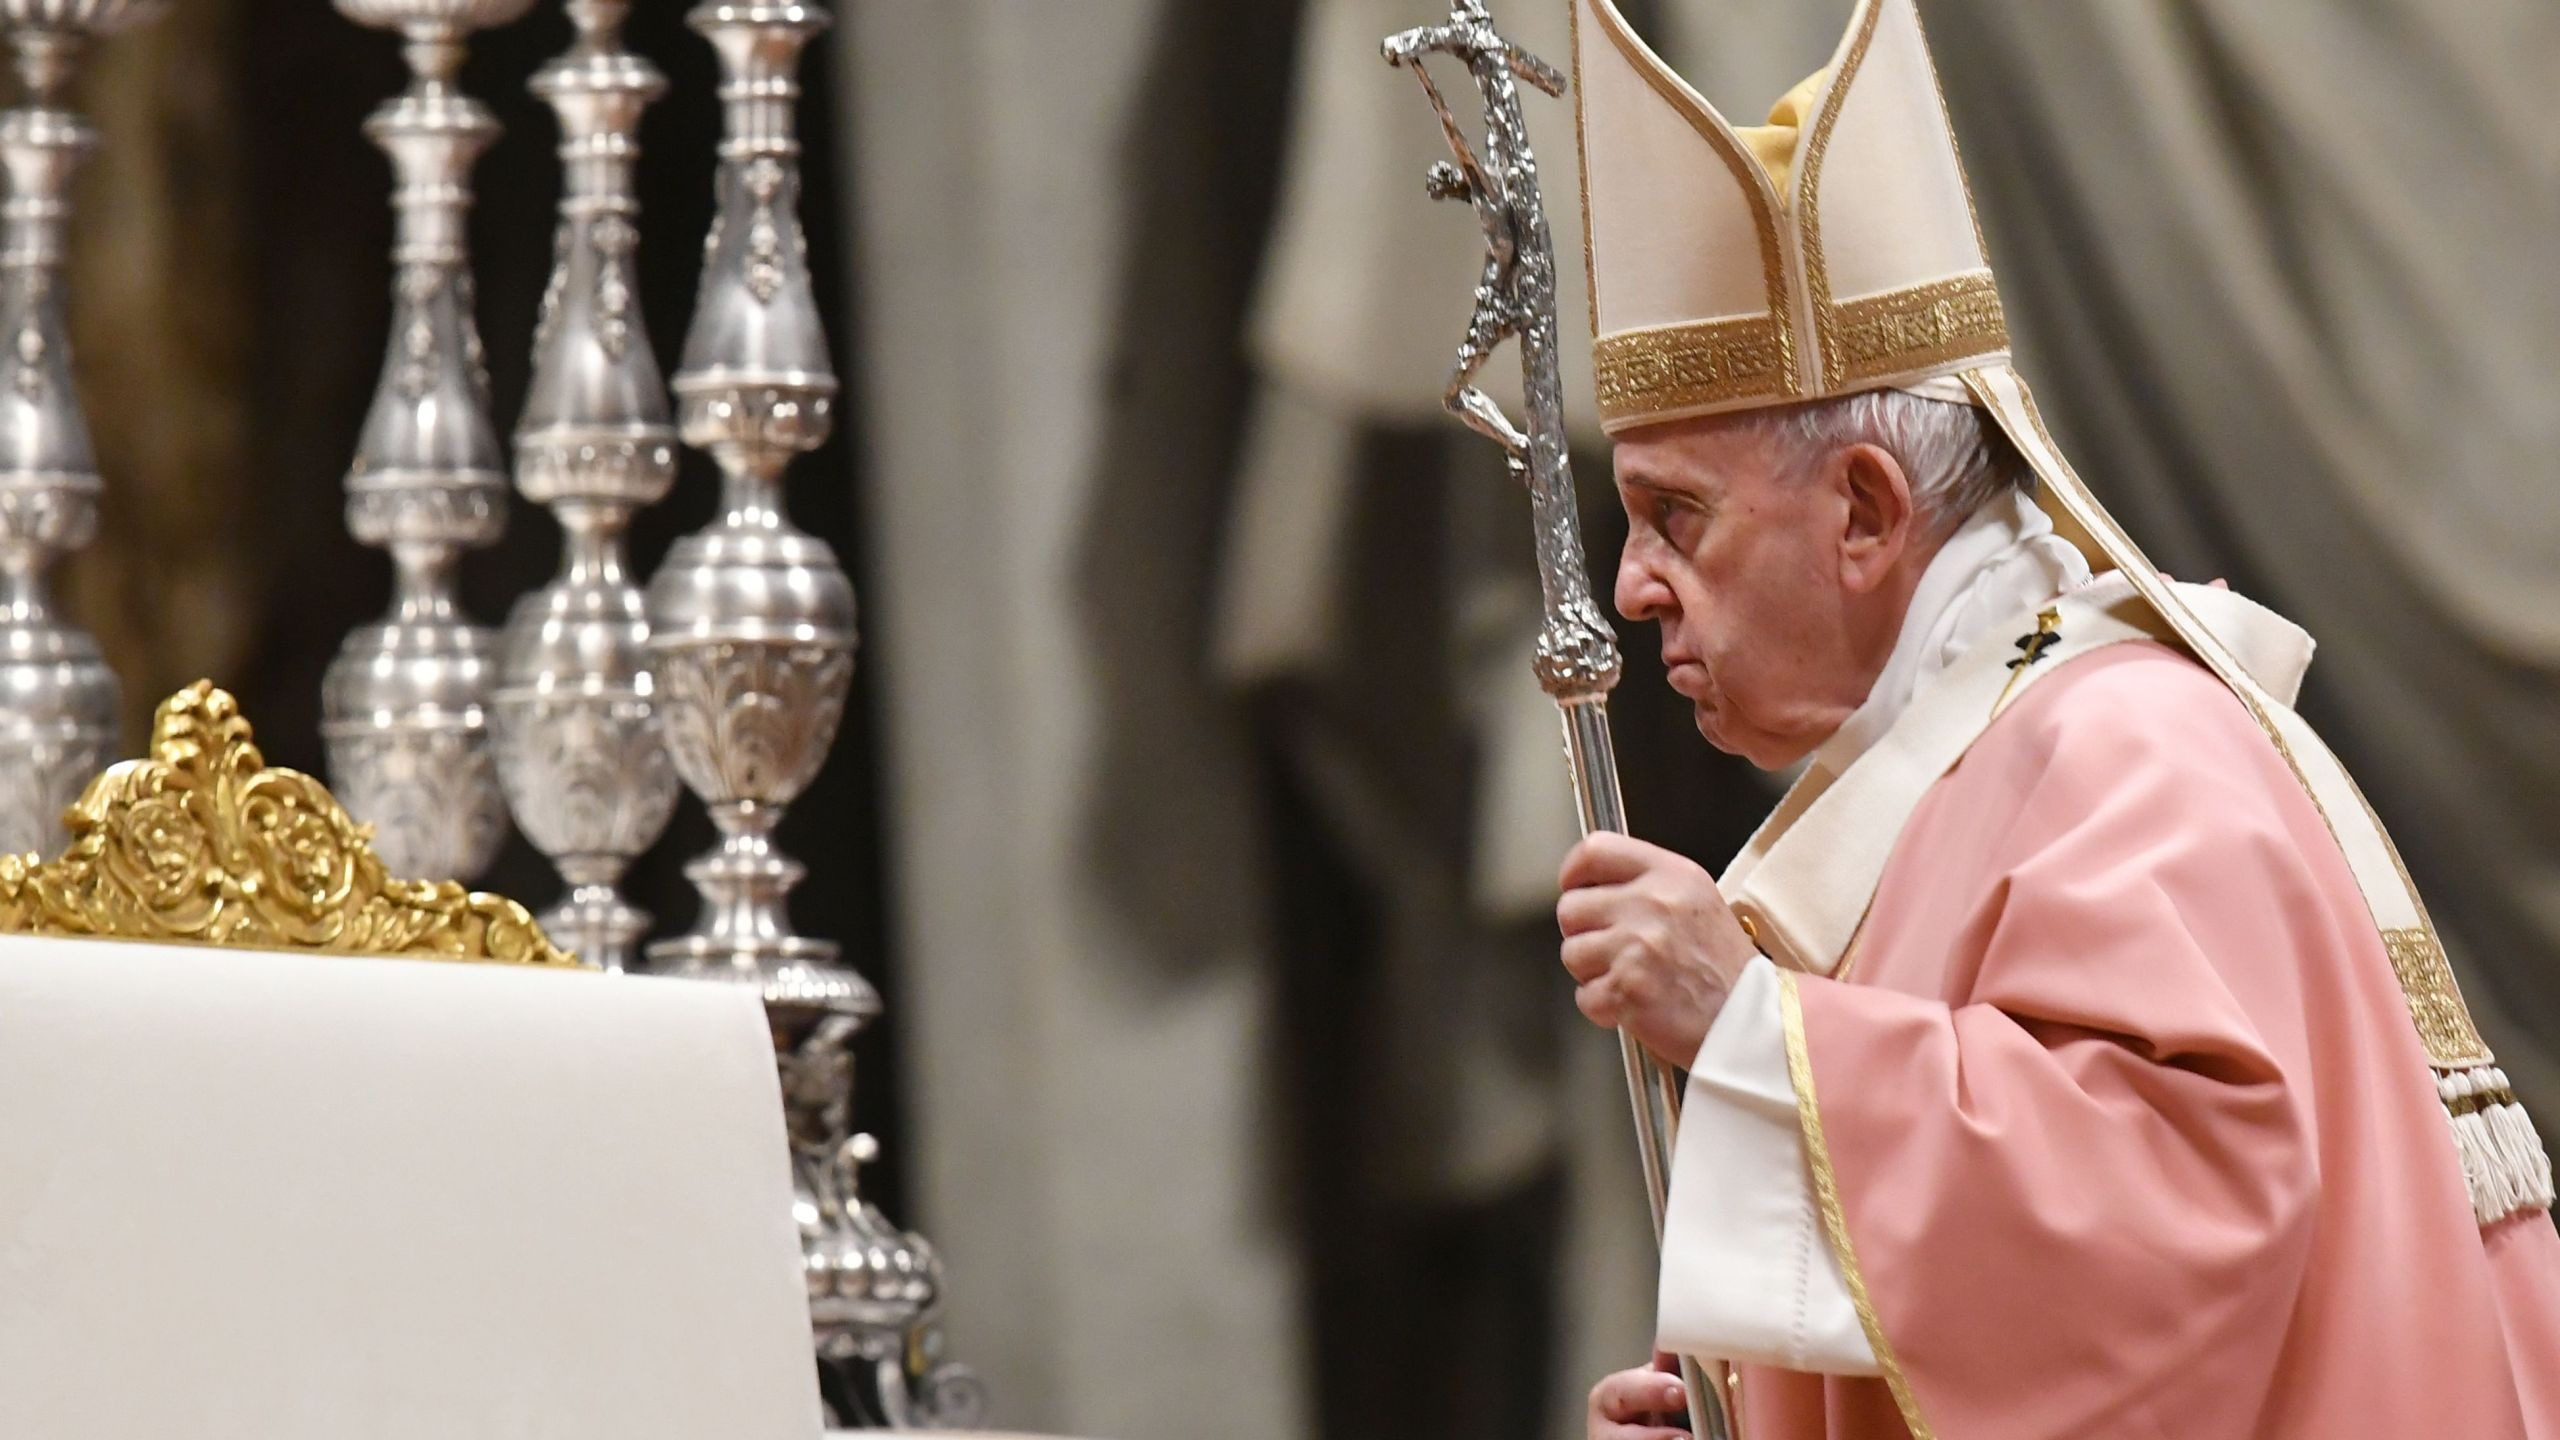 Pope Francis celebrates Mass for the Filipino community on December 15, 2019 at St. Peter's Basilica in the Vatican. (Credit: TIZIANA FABI/AFP via Getty Images)